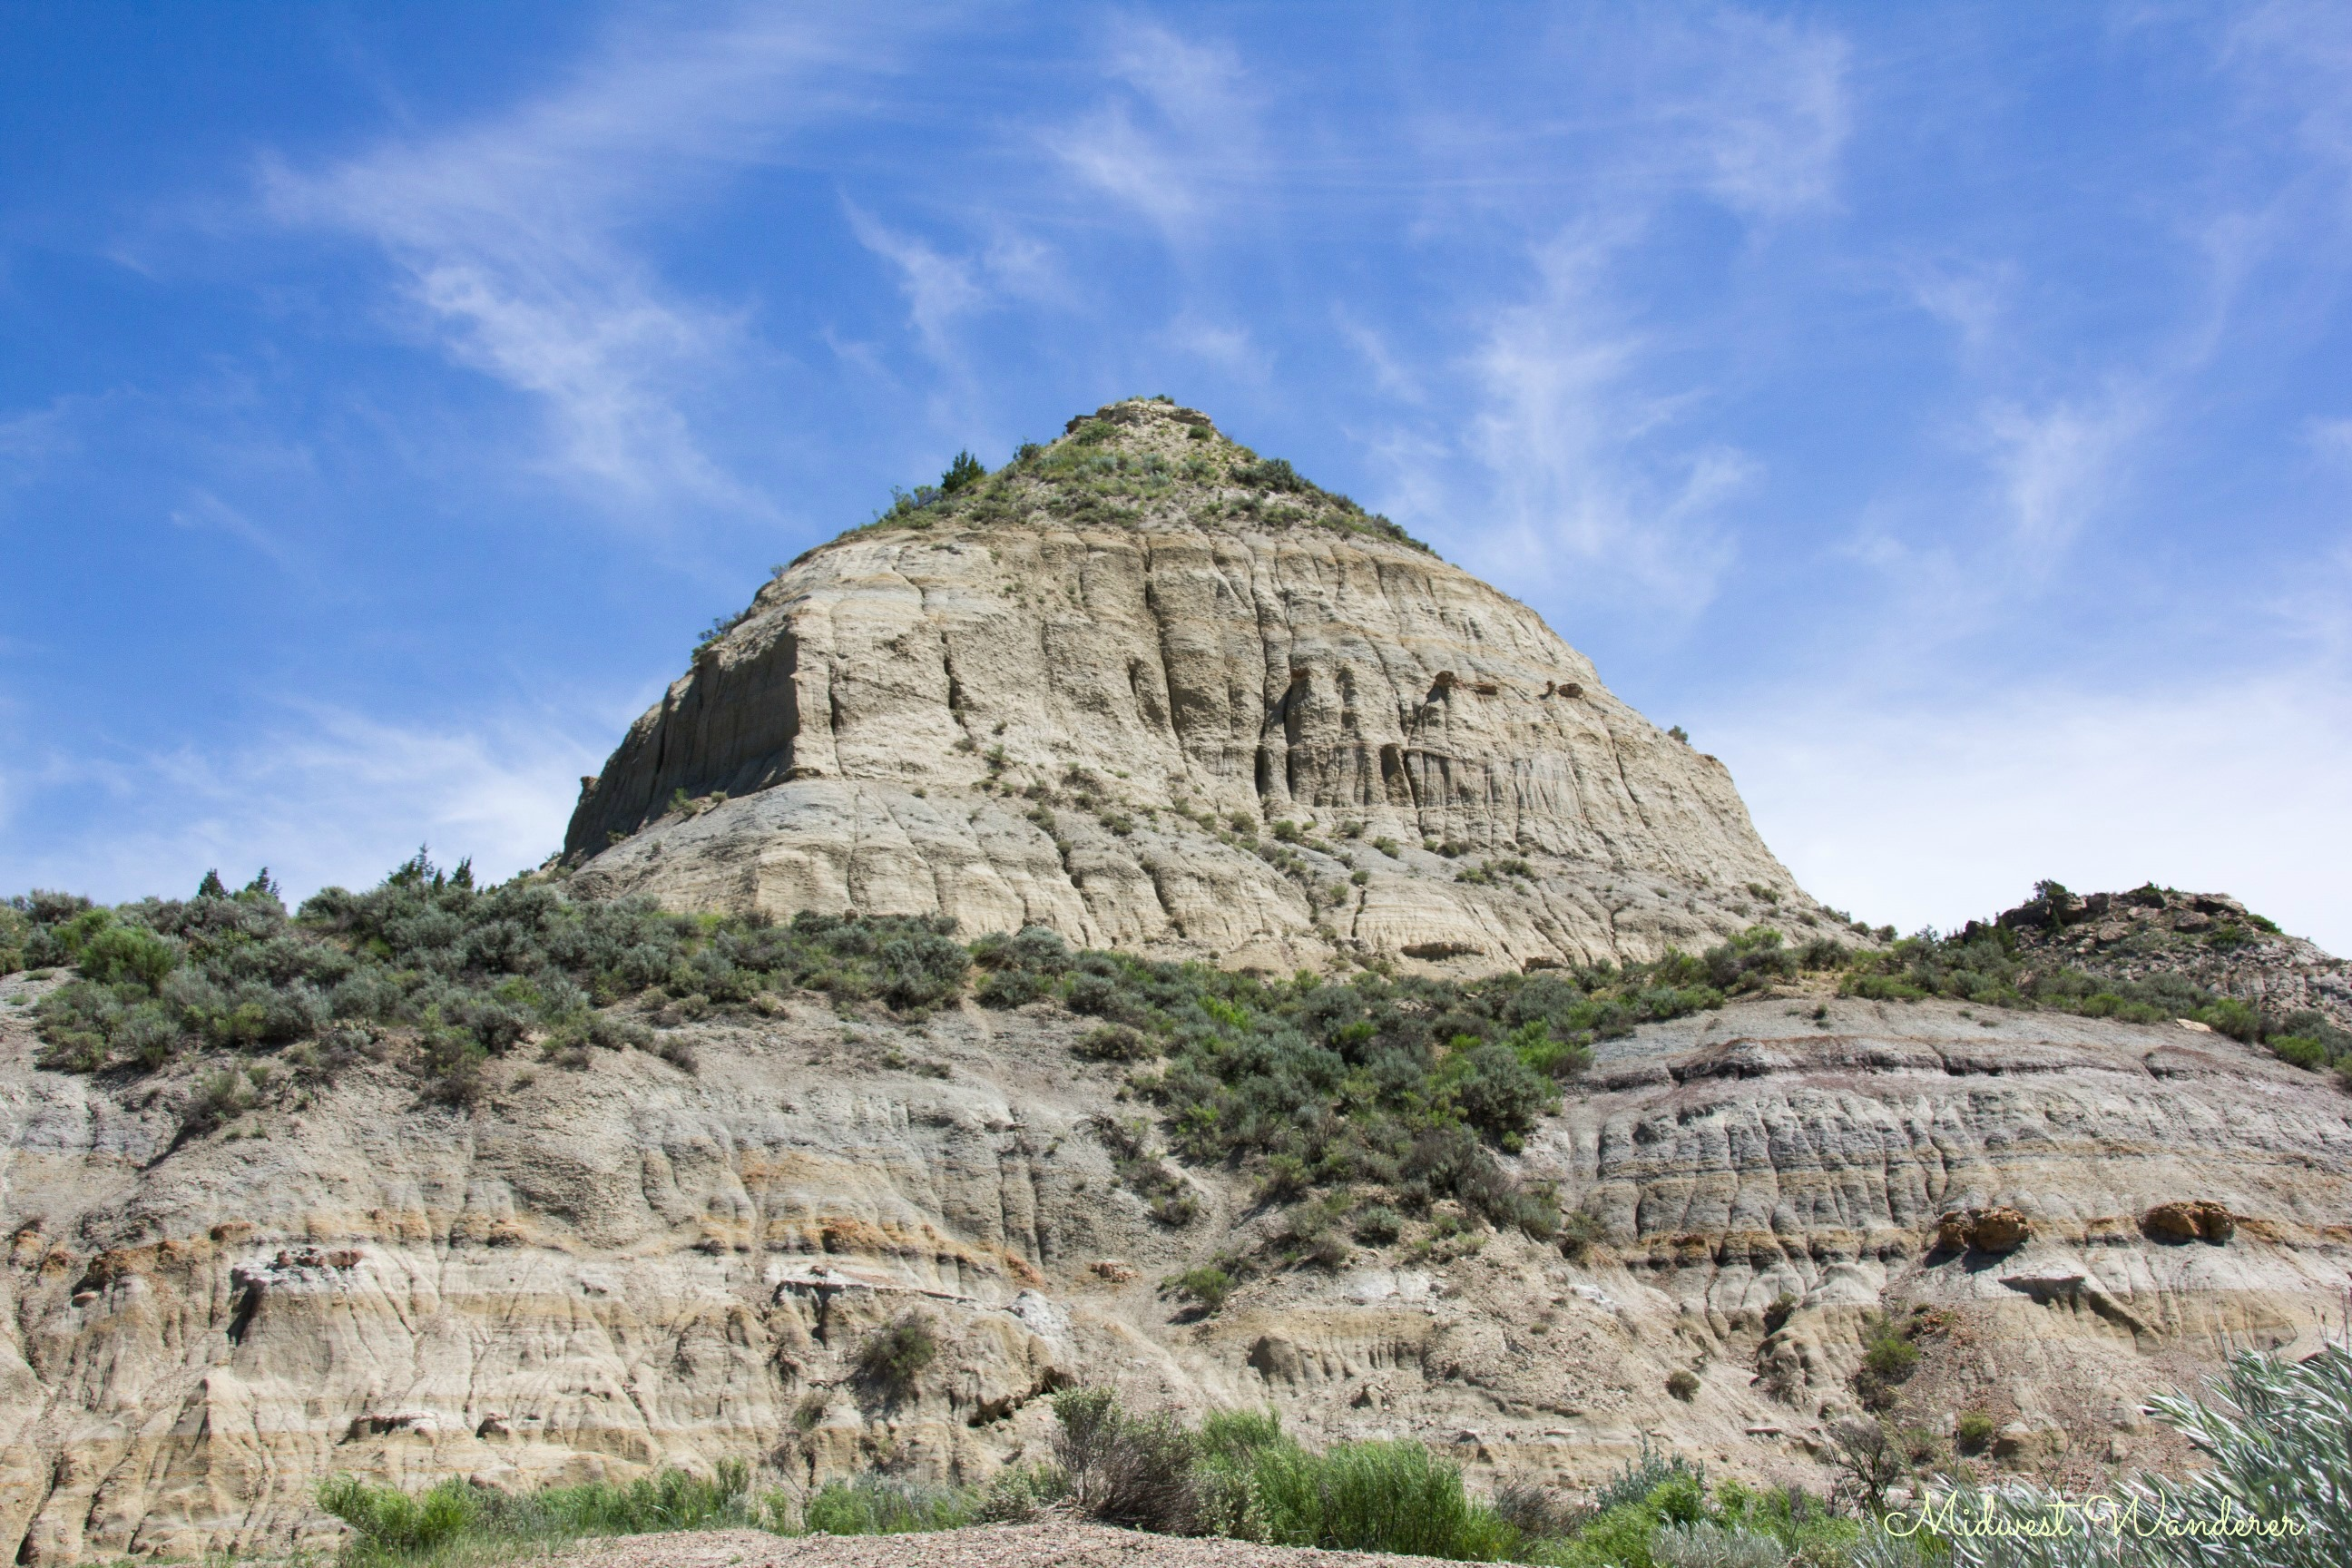 Driving Through Theodore Roosevelt National Park